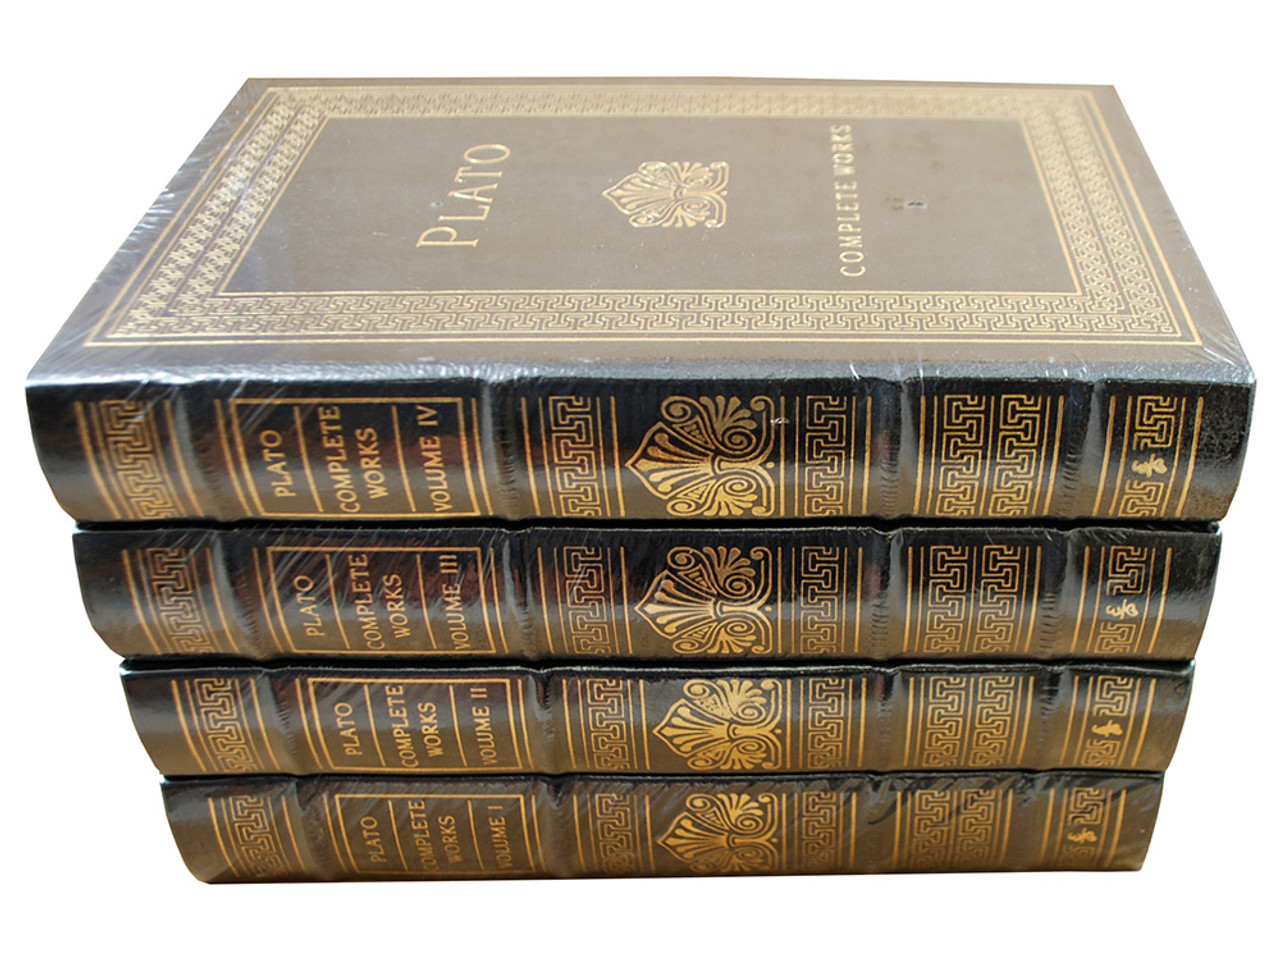 """Easton Press """"Plato: Complete Works"""" Leather Bound Limited Edition, Complete 4 Volume Matching Set [Sealed]"""